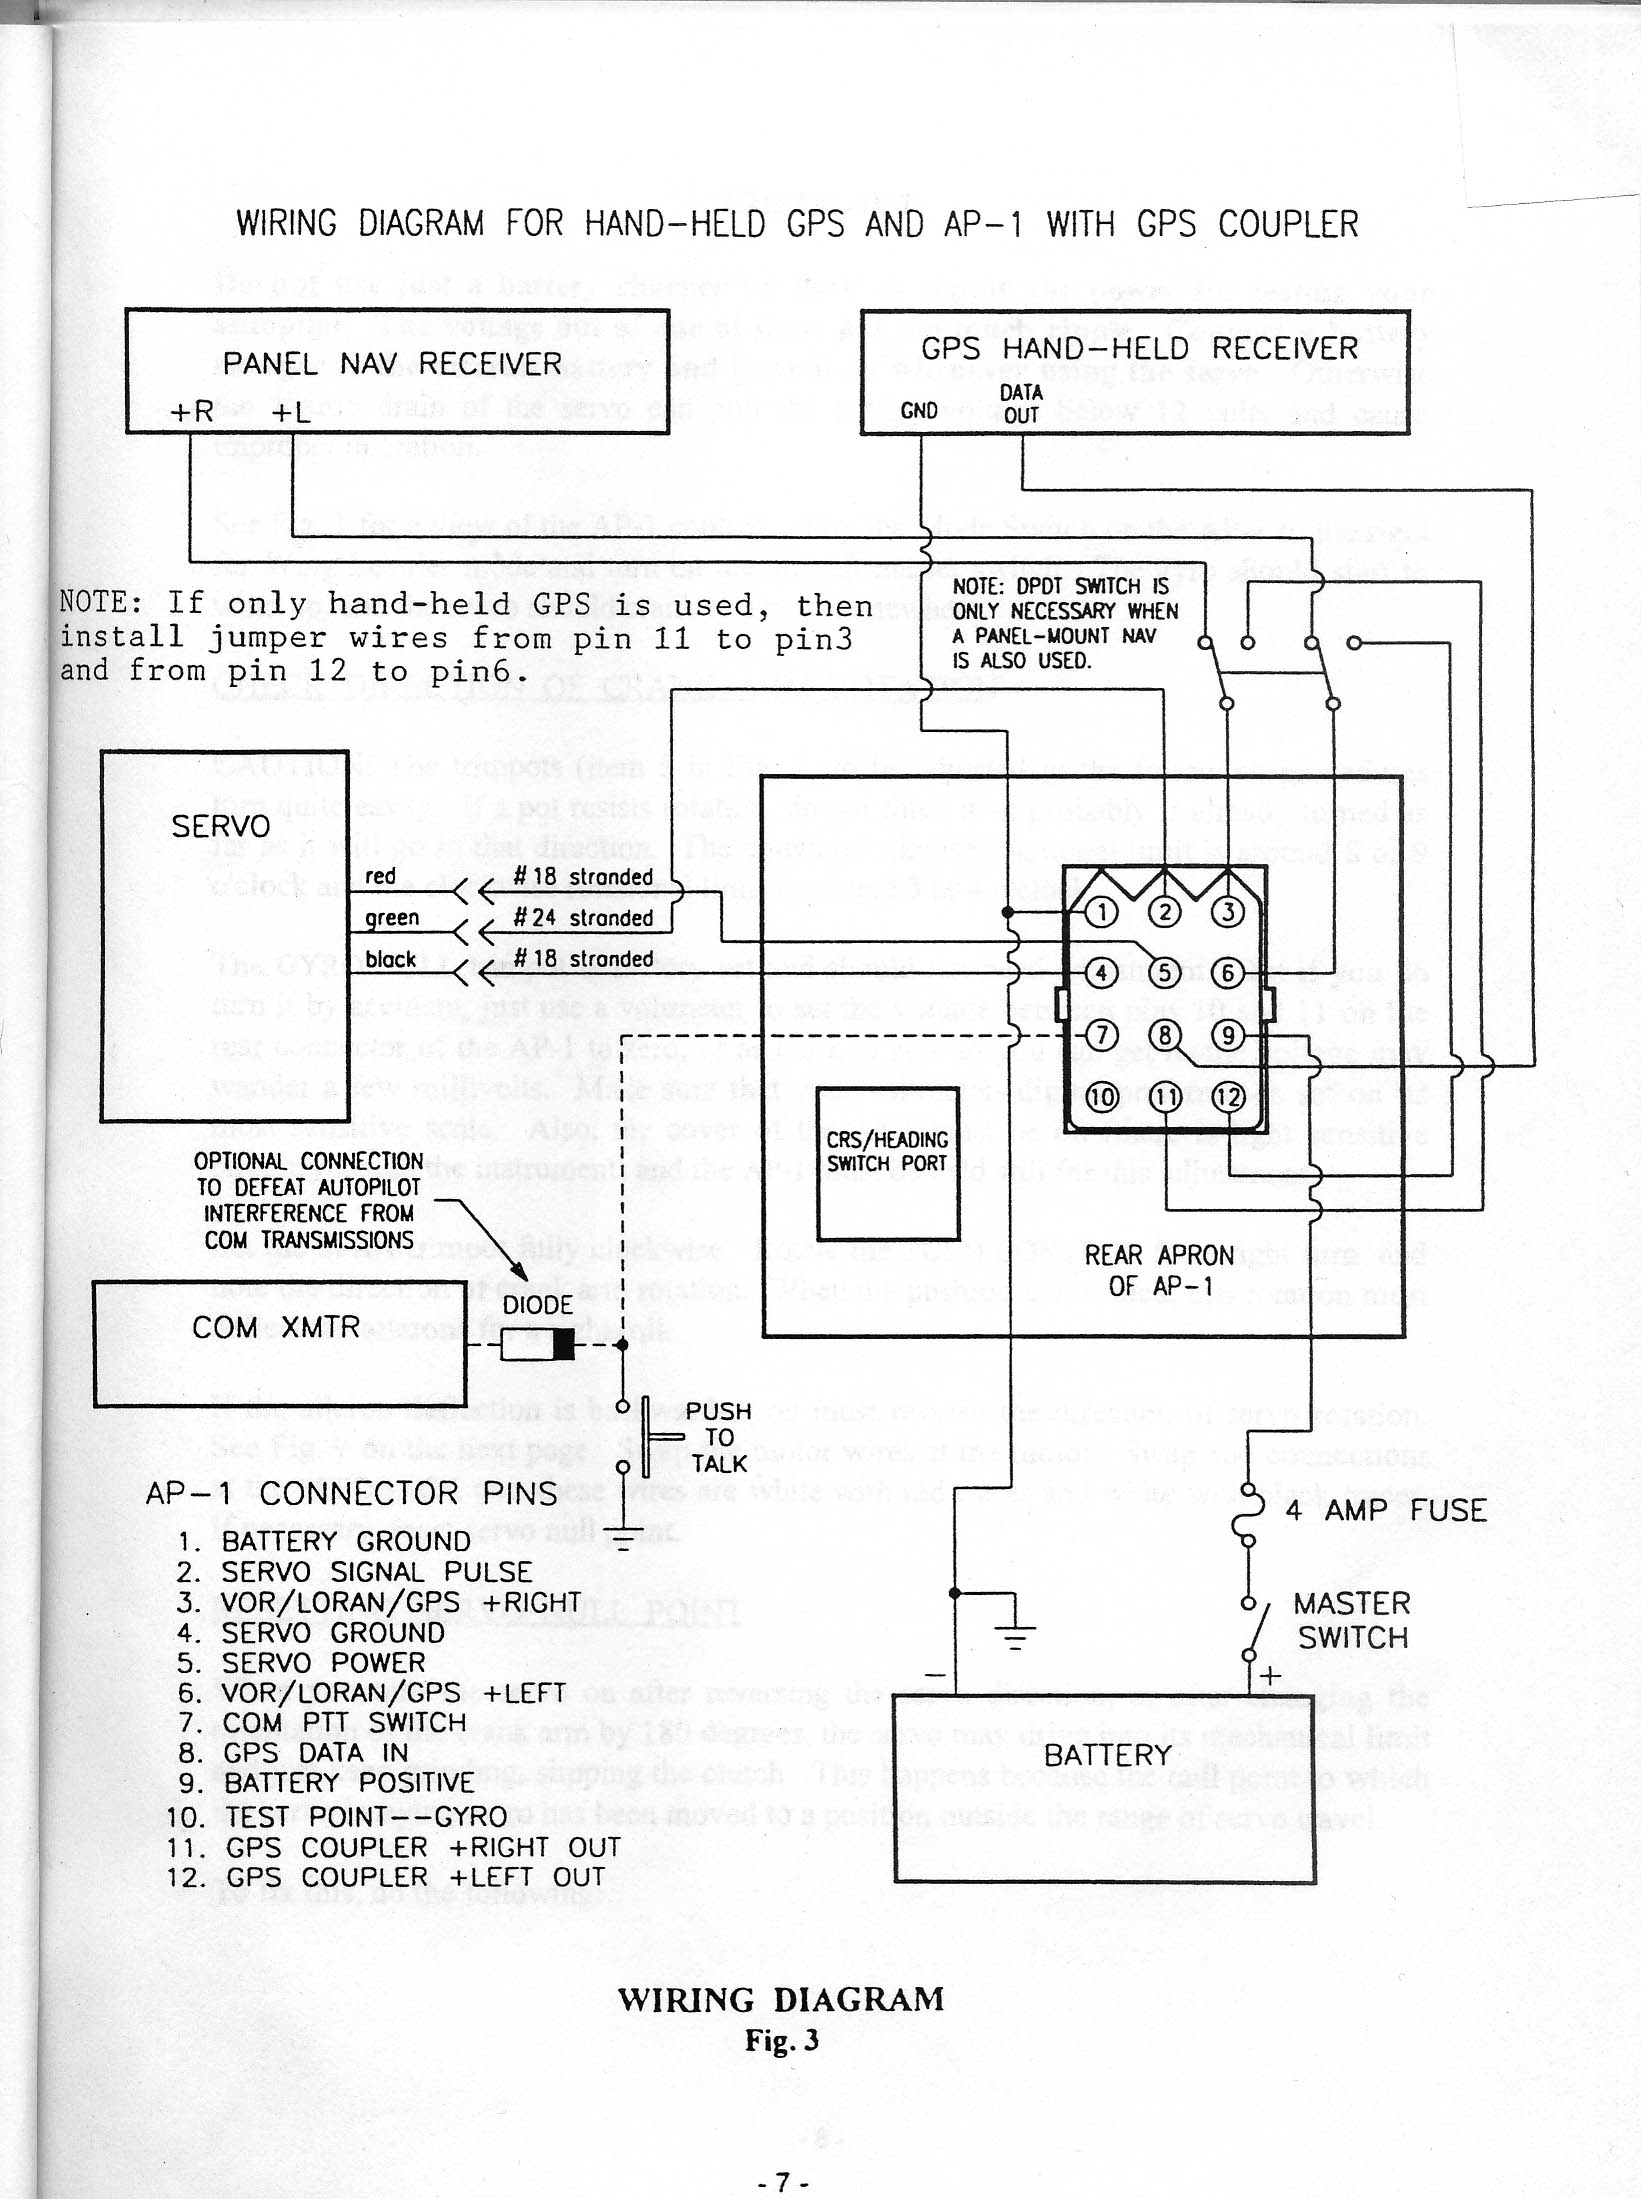 diagram king ky 92 wiring diagram automotive wiring diagrams \u2022 wiring king ka 134 audio panel wiring diagram at honlapkeszites.co